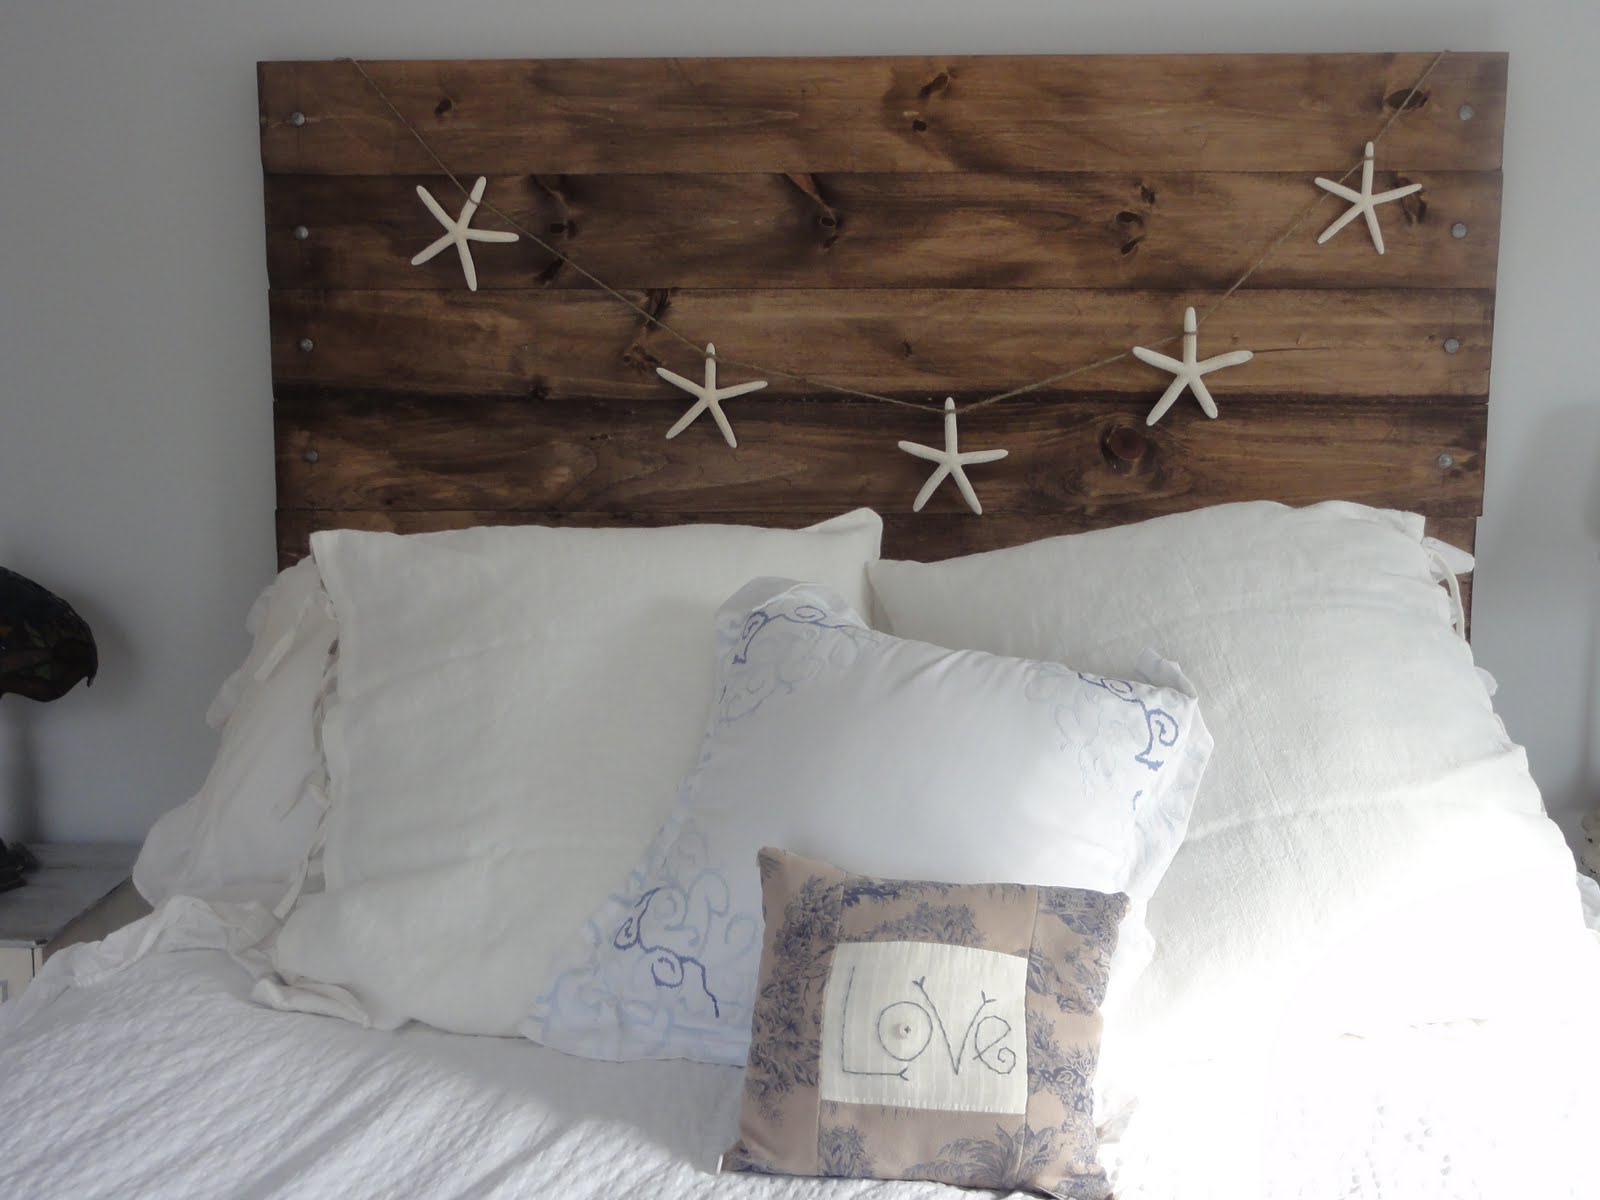 Our new 'reclaimed' wood headboard